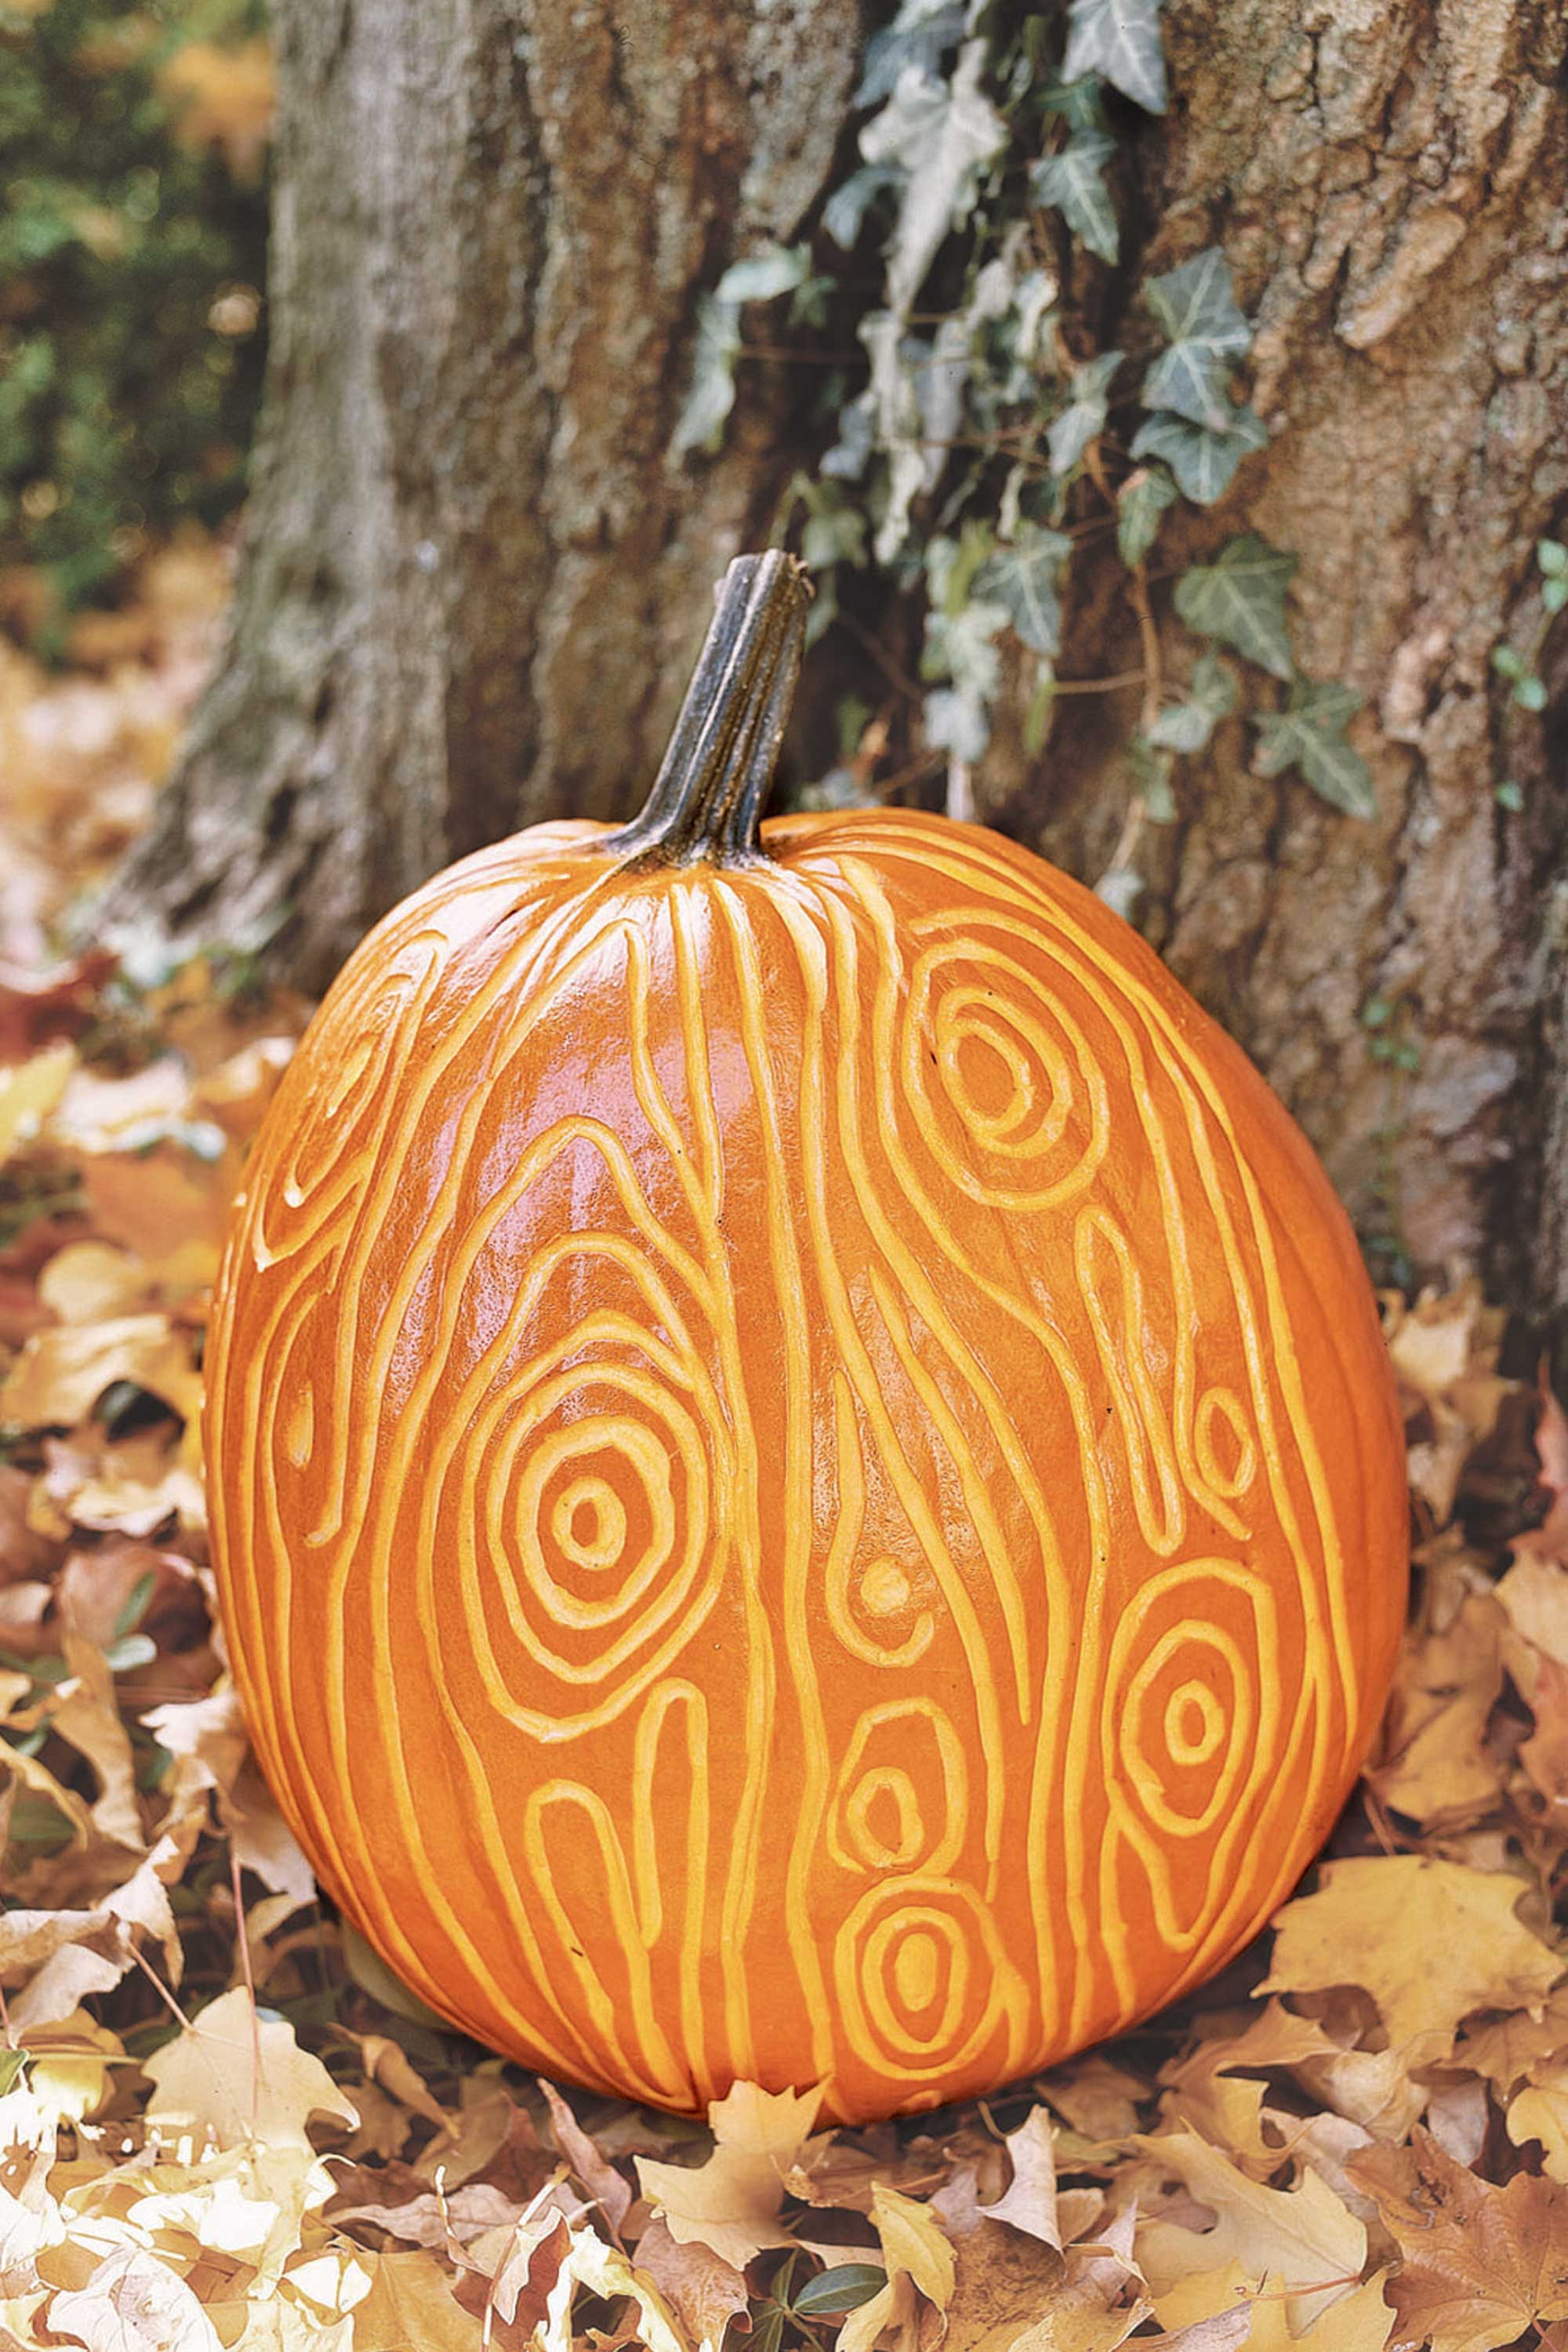 Pumpkin Carving 50 Easy Pumpkin Carving Ideas 2017 Cool Patterns And Designs For